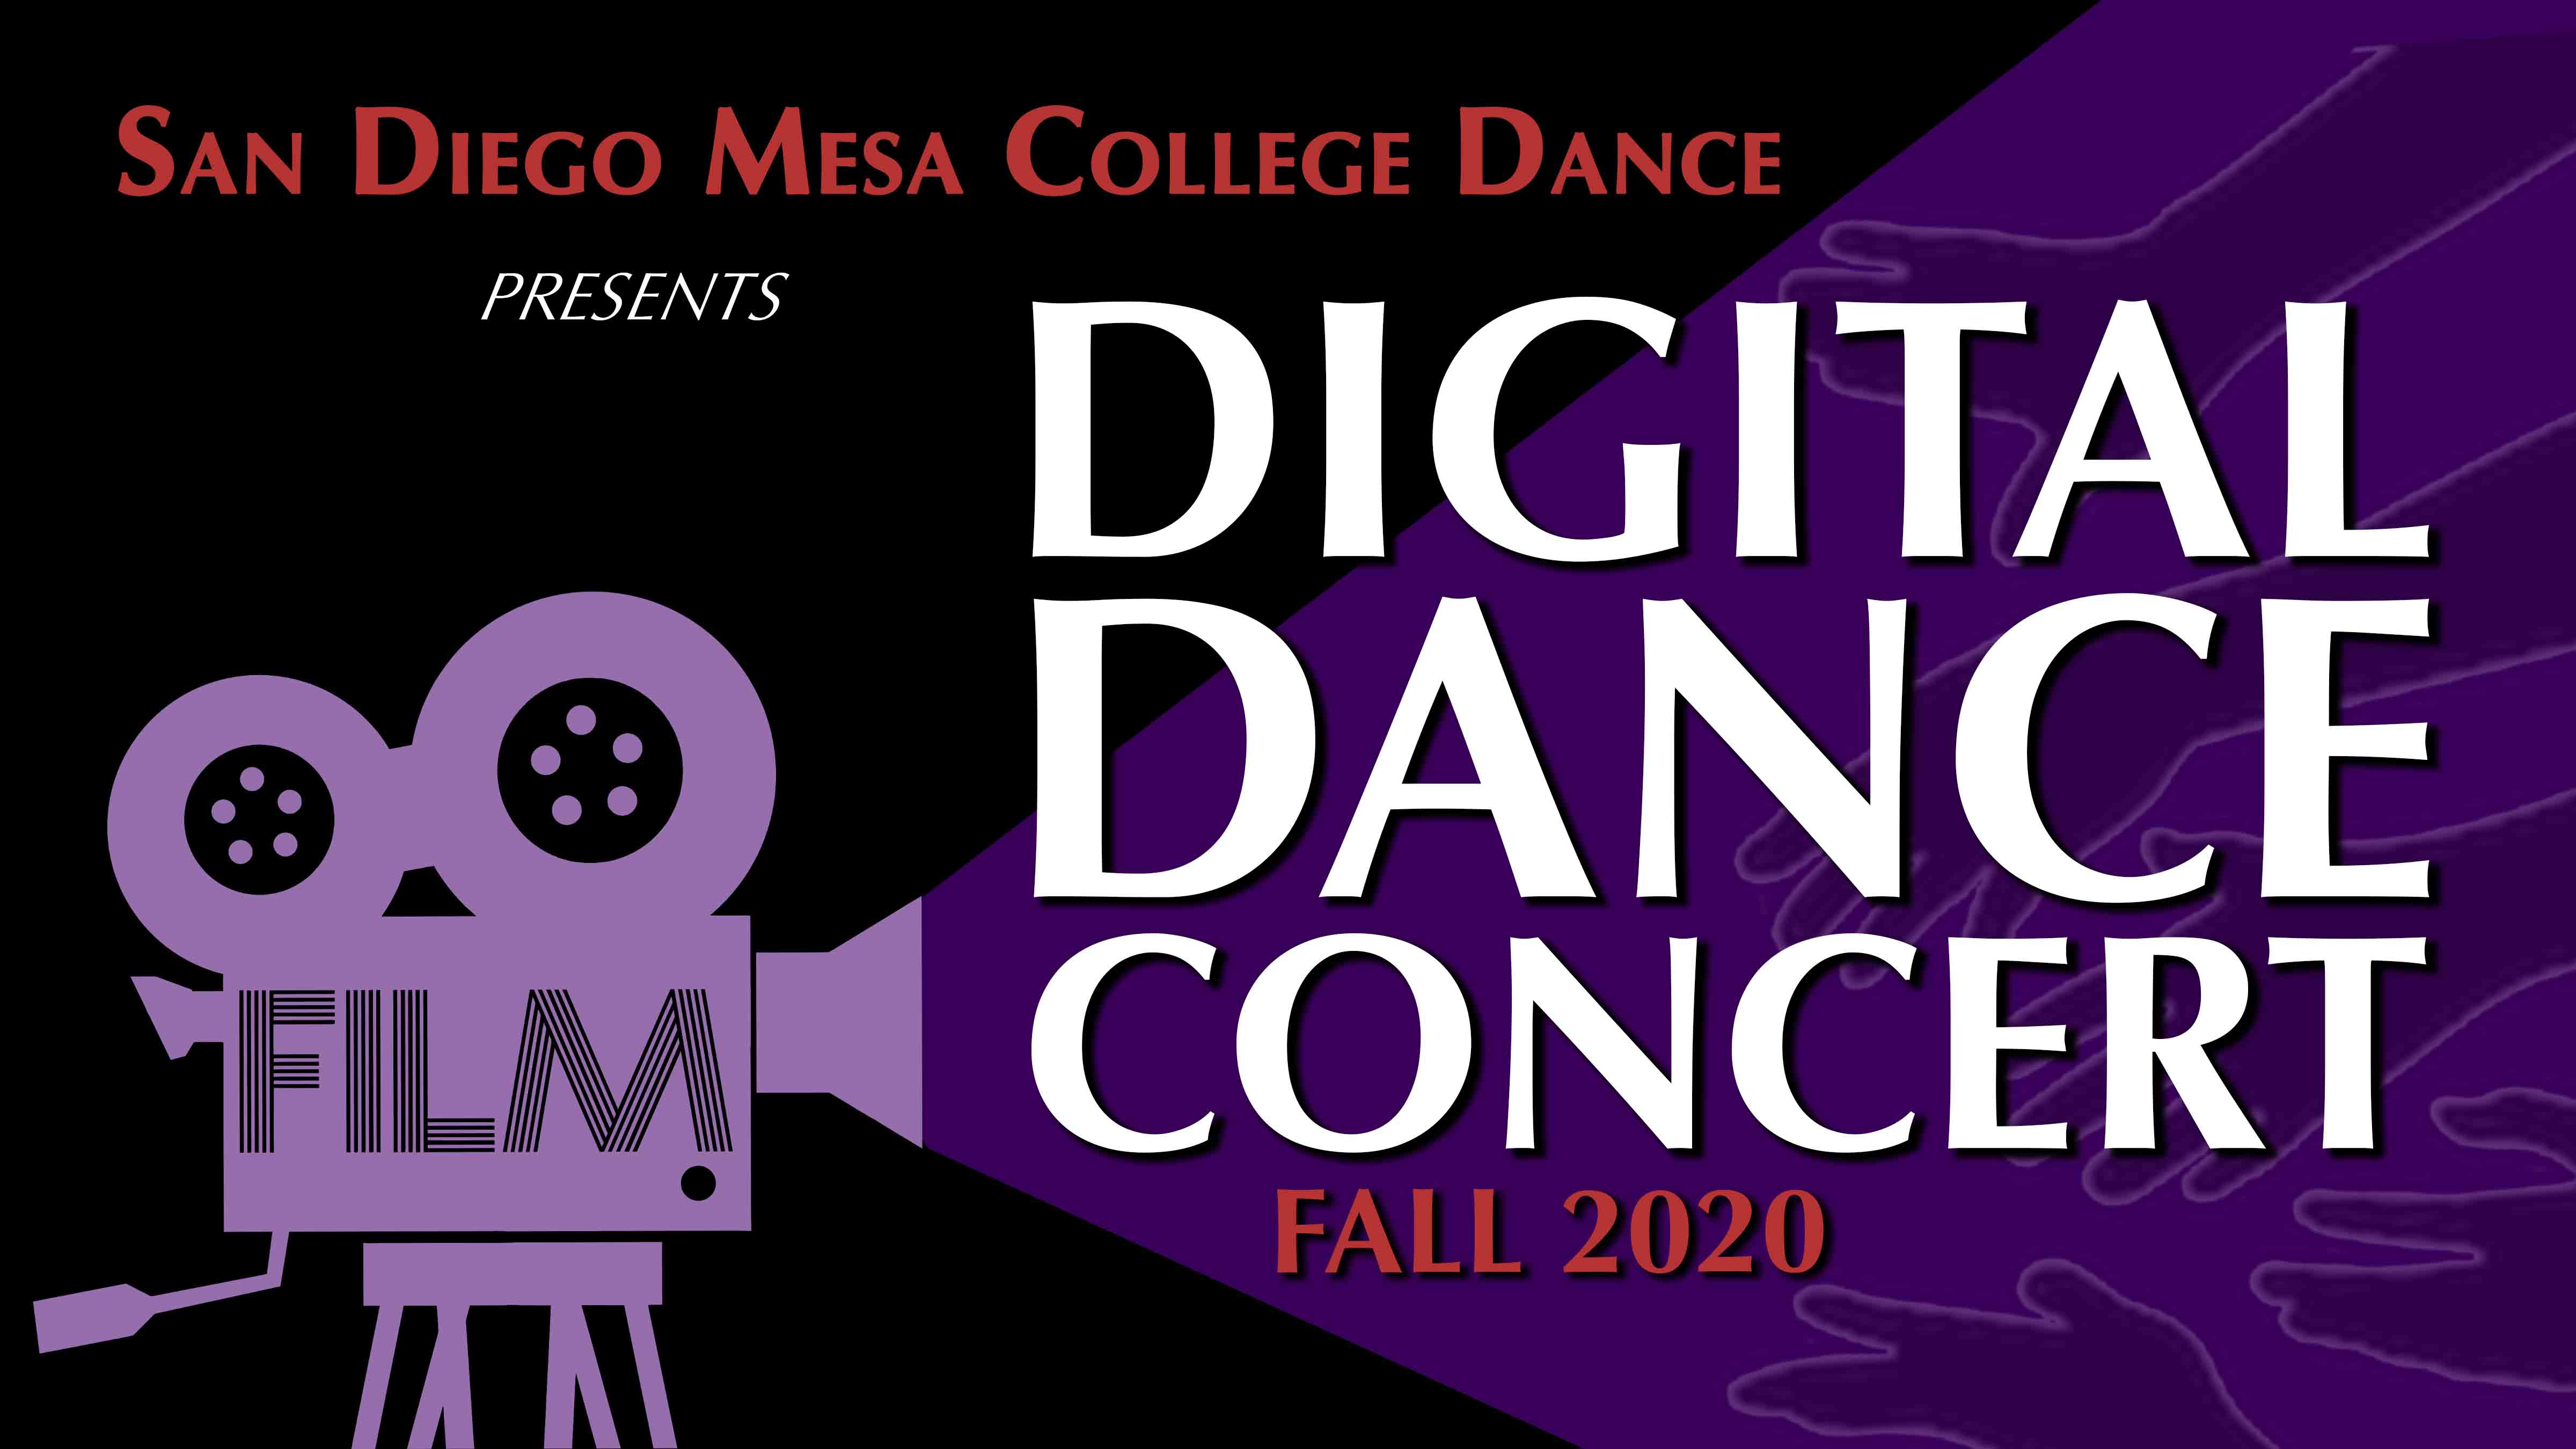 Digital Dance Concert Image